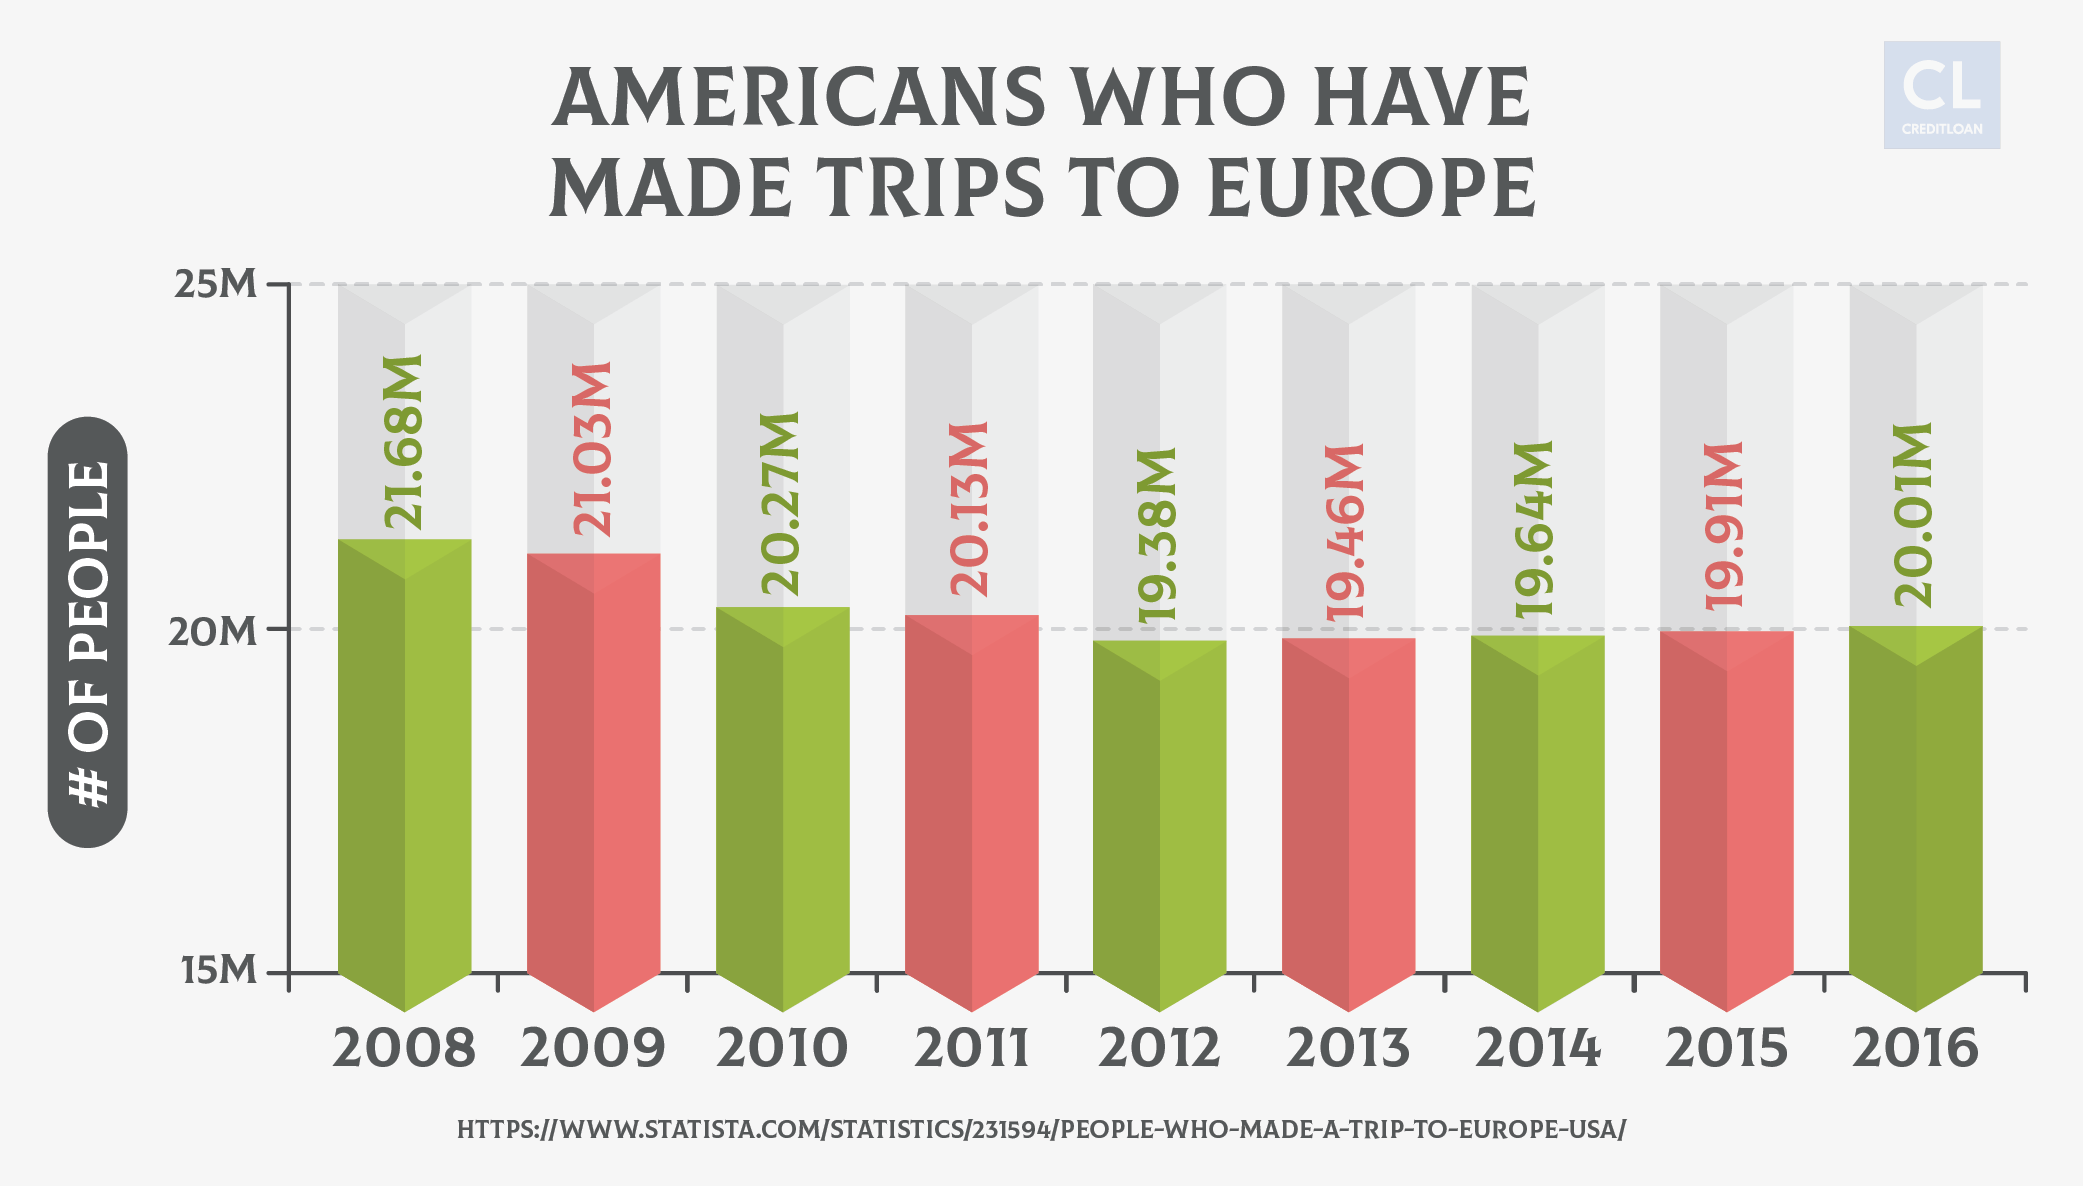 American's traveling to Europe (2008-2016)